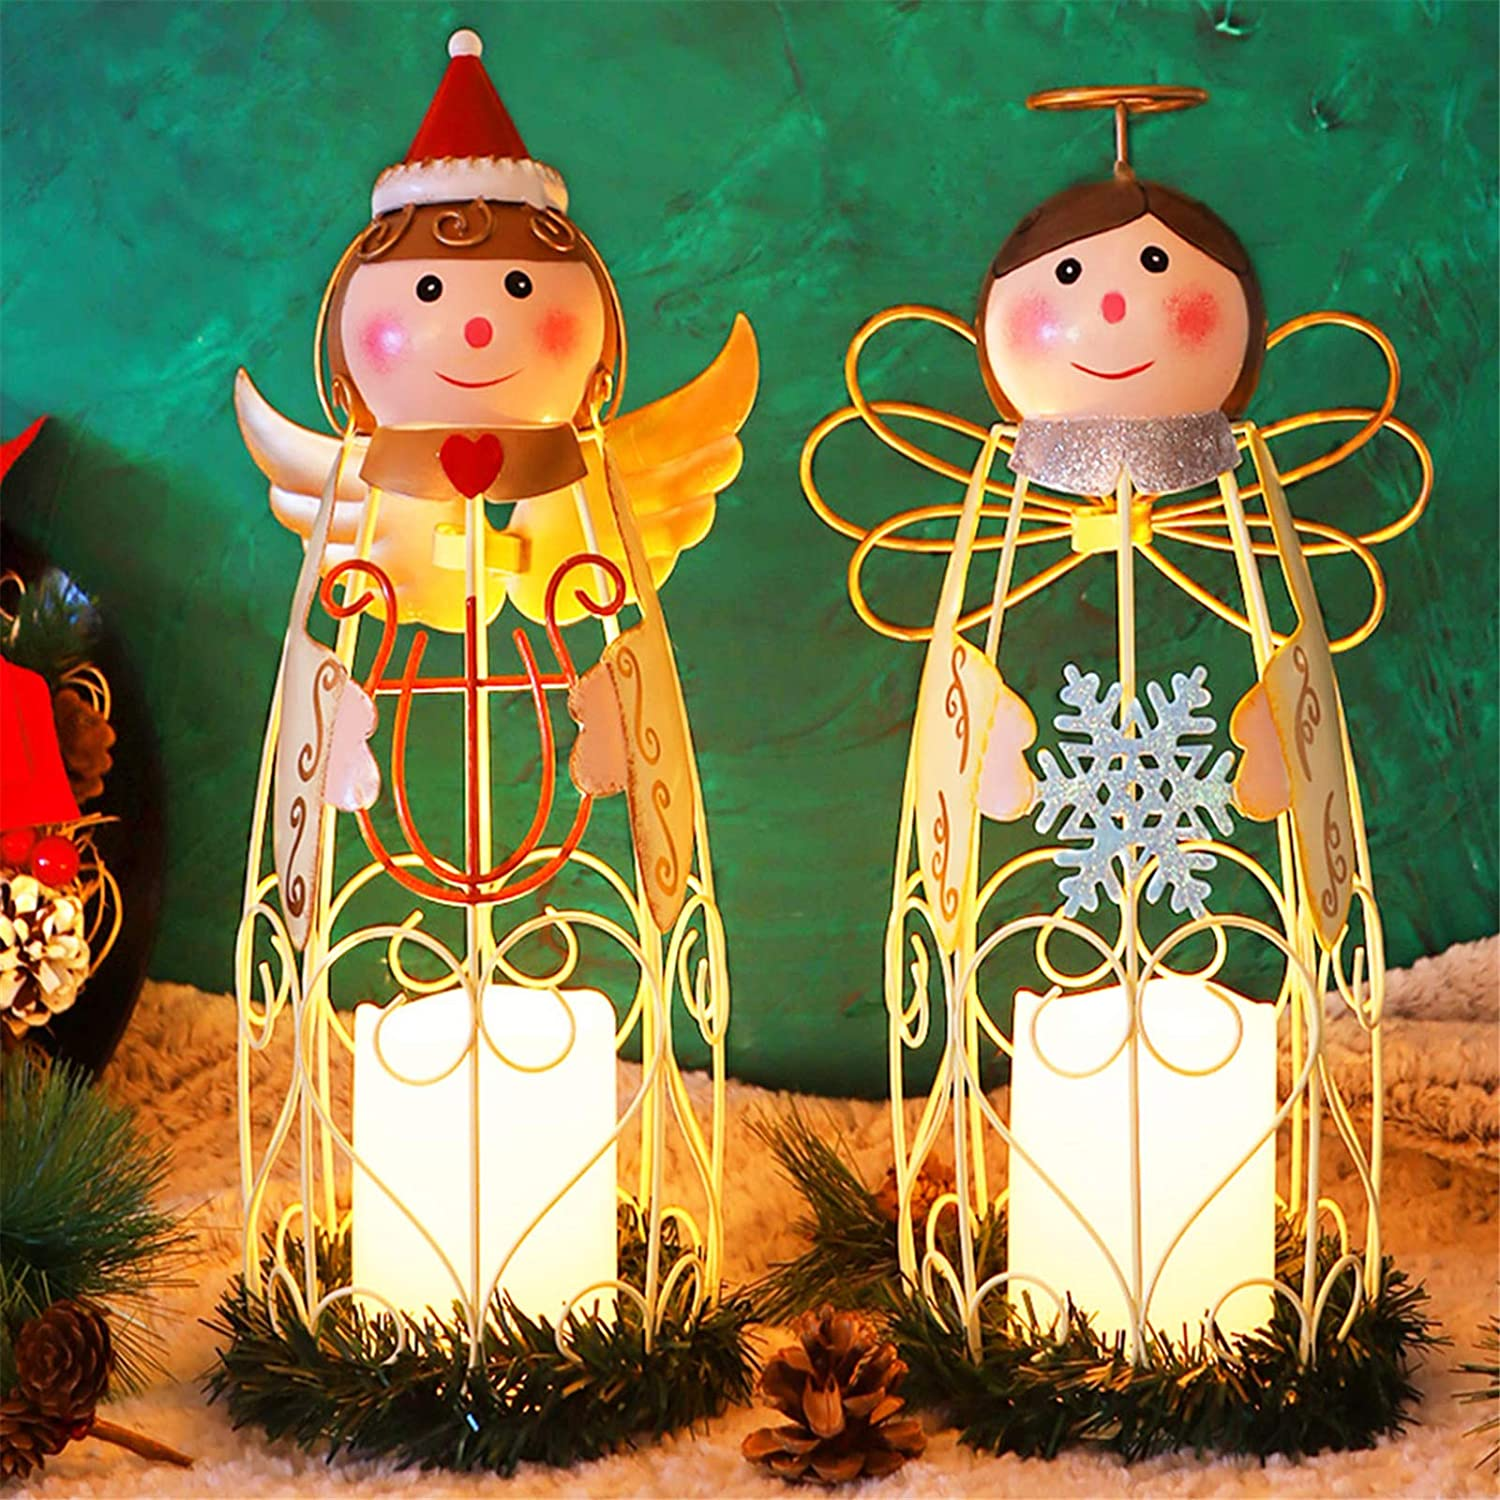 Juegoal Christmas Angel LED Candle Lantern Lights Battery Operated Lighted Christmas Table Decorations Xmas Holiday Party Decor, Set of 2